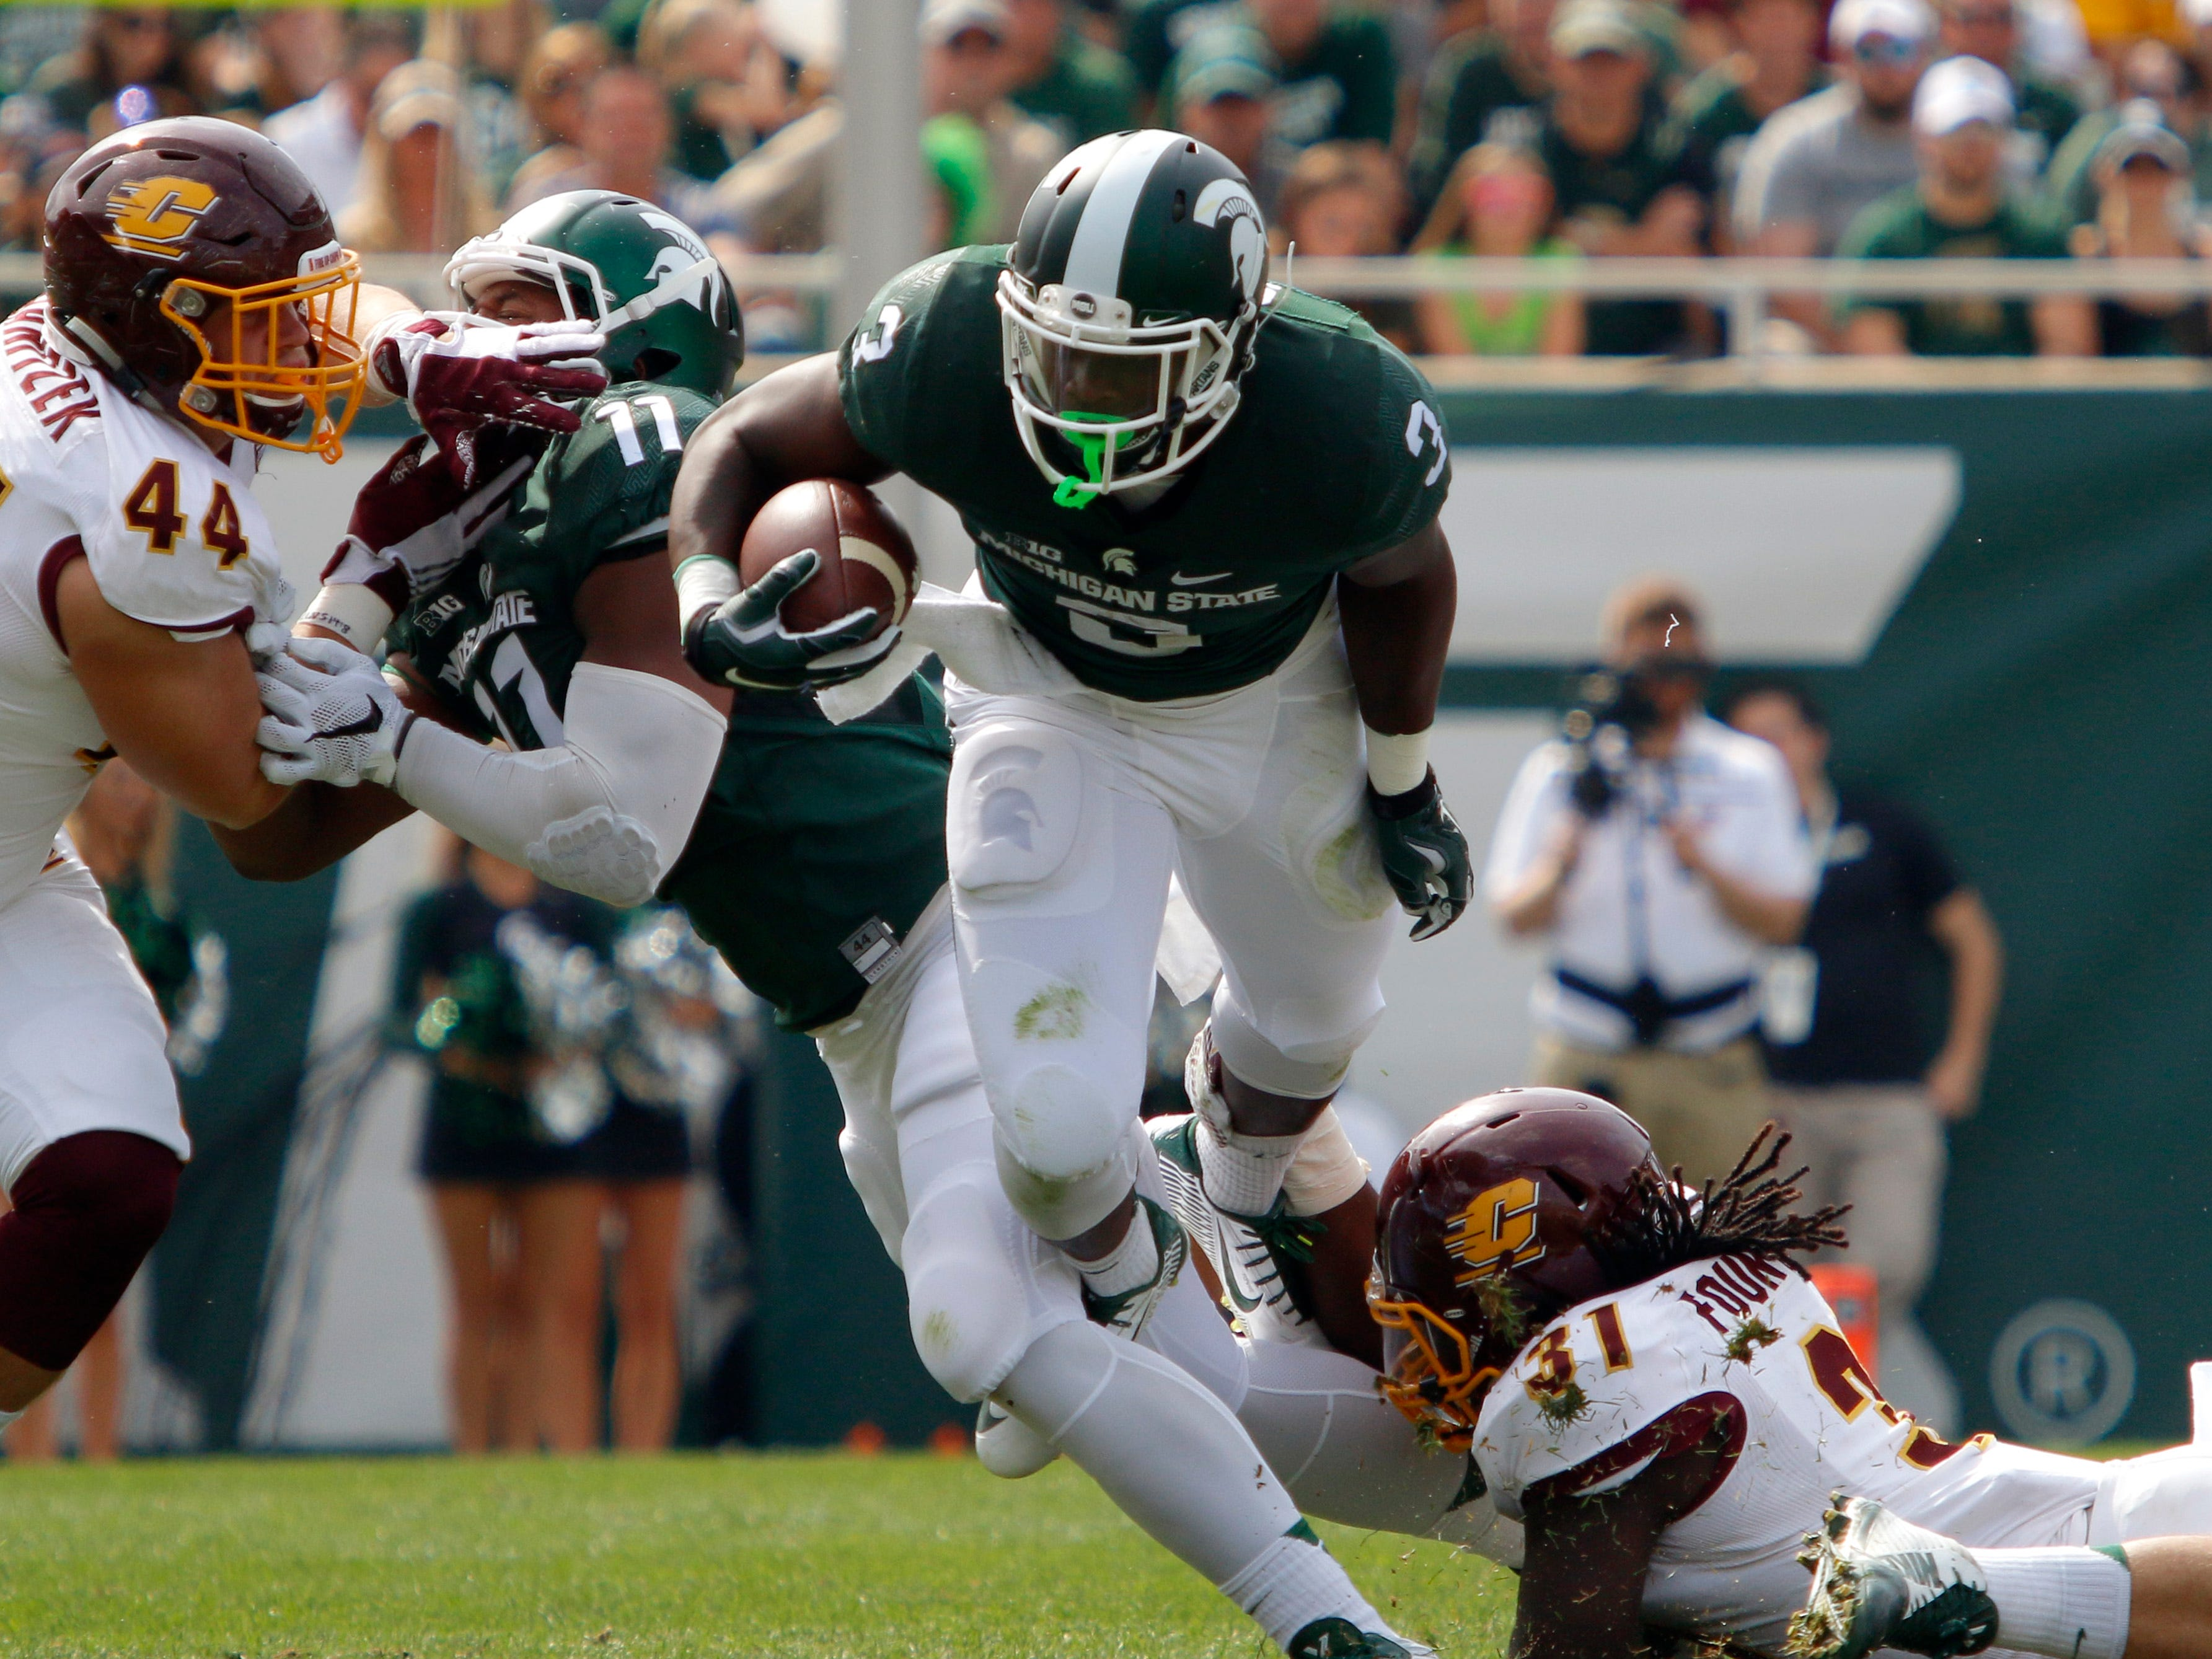 18. Central Michigan at Michigan State. When: Sept. 29. Where: East Lansing. The buzz: The Chippewas have been known to be upset-minded (i.e. Oklahoma State 2016) but they will have to be on top of their game against the Spartans.